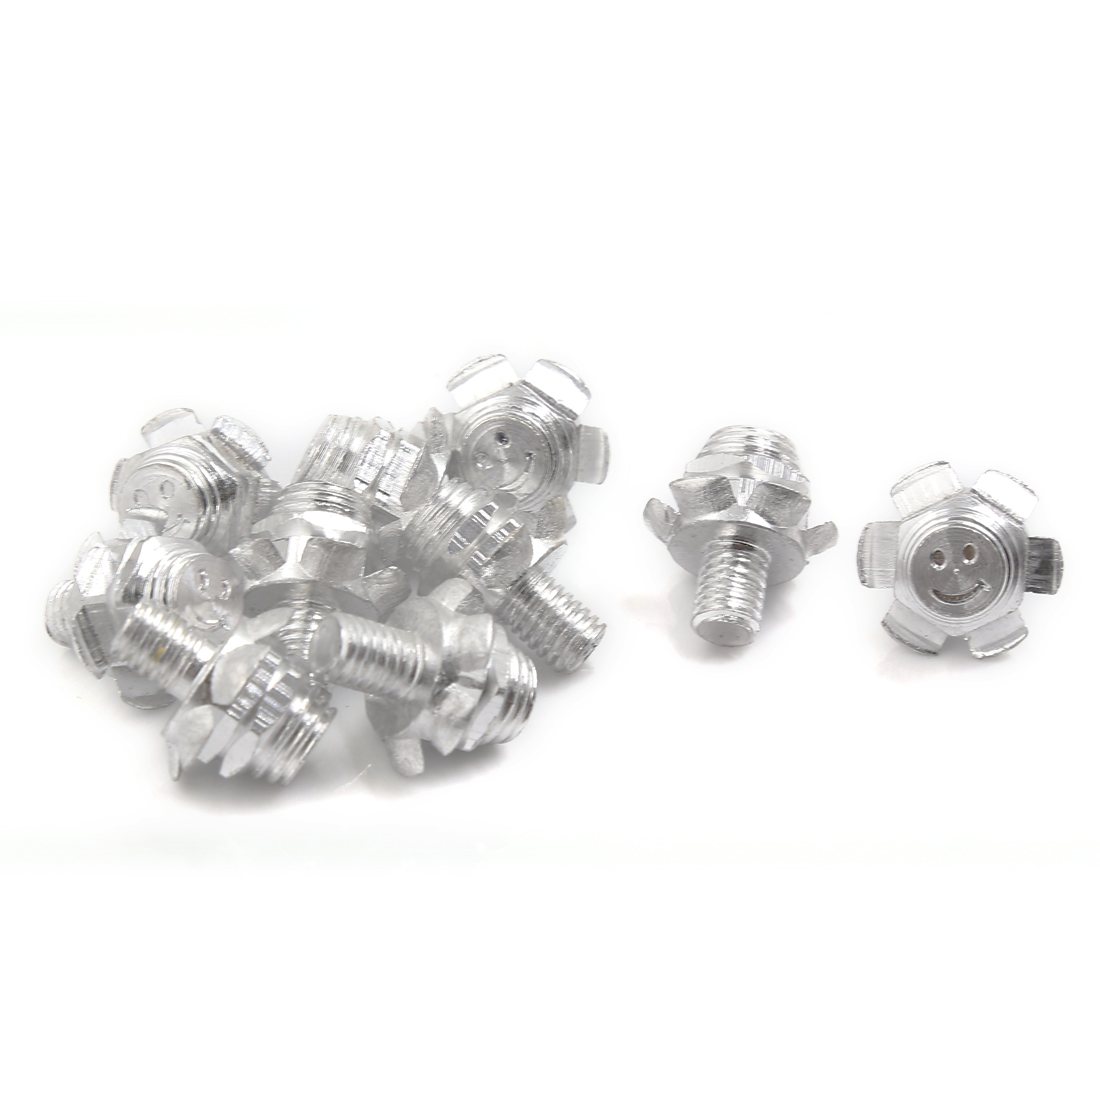 10 Pcs Flower Shaped Motorcycle License Plate Frame Decorative Screws 24mm x 8mm